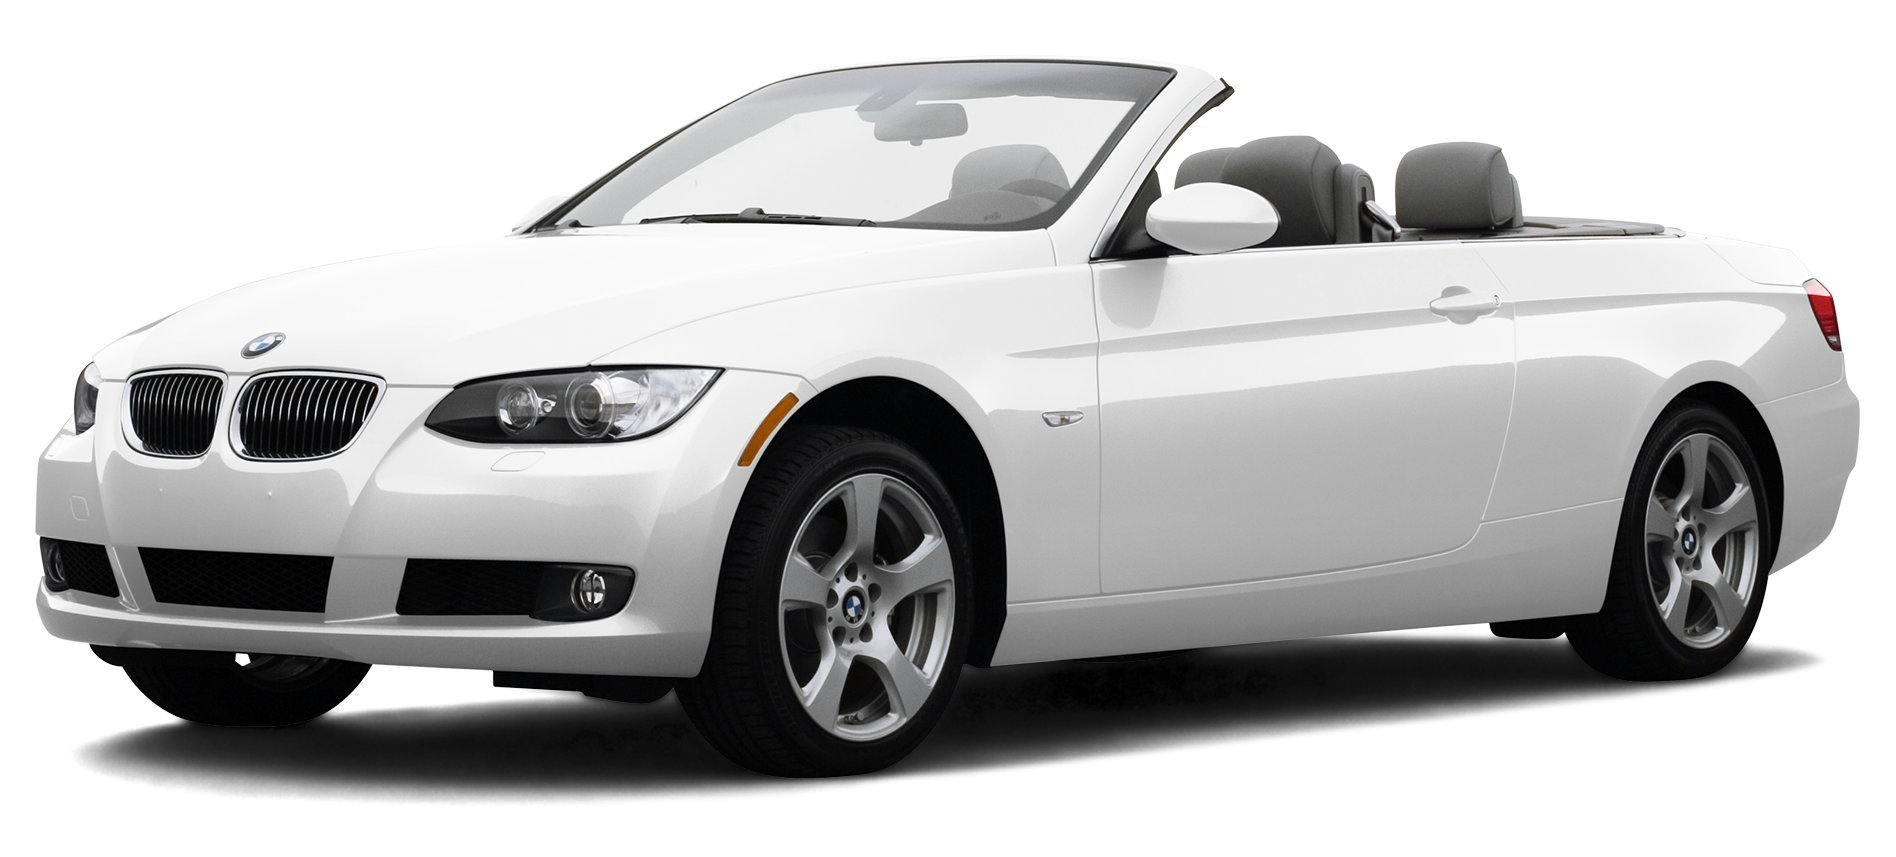 Amazoncom BMW I Reviews Images And Specs Vehicles - 2007 bmw 328i convertible